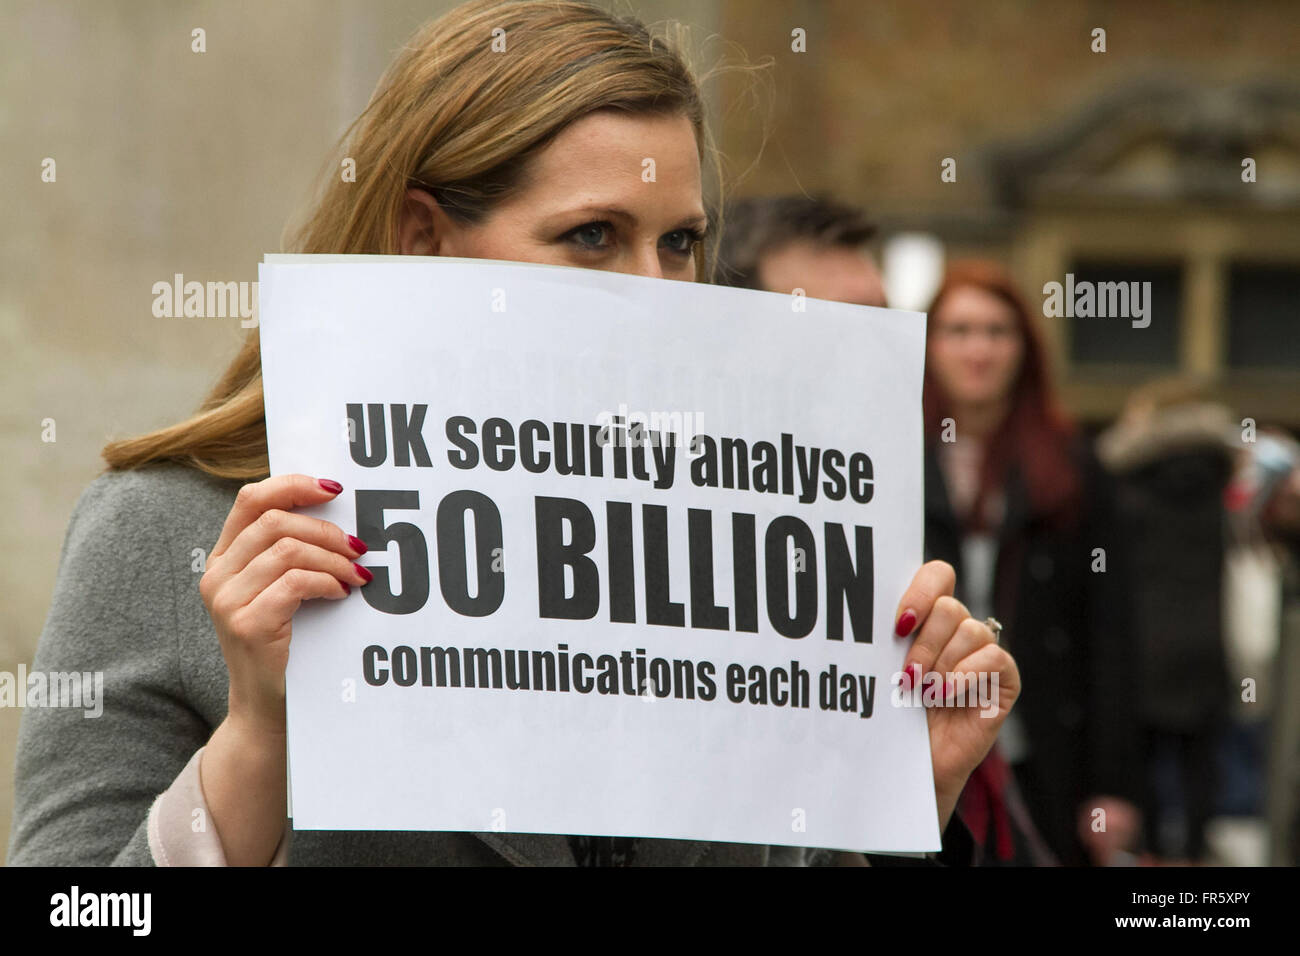 London,UK. 21st March 2016. A woman holds a sign in front of a a television crew highlighting the fact the United - Stock Image